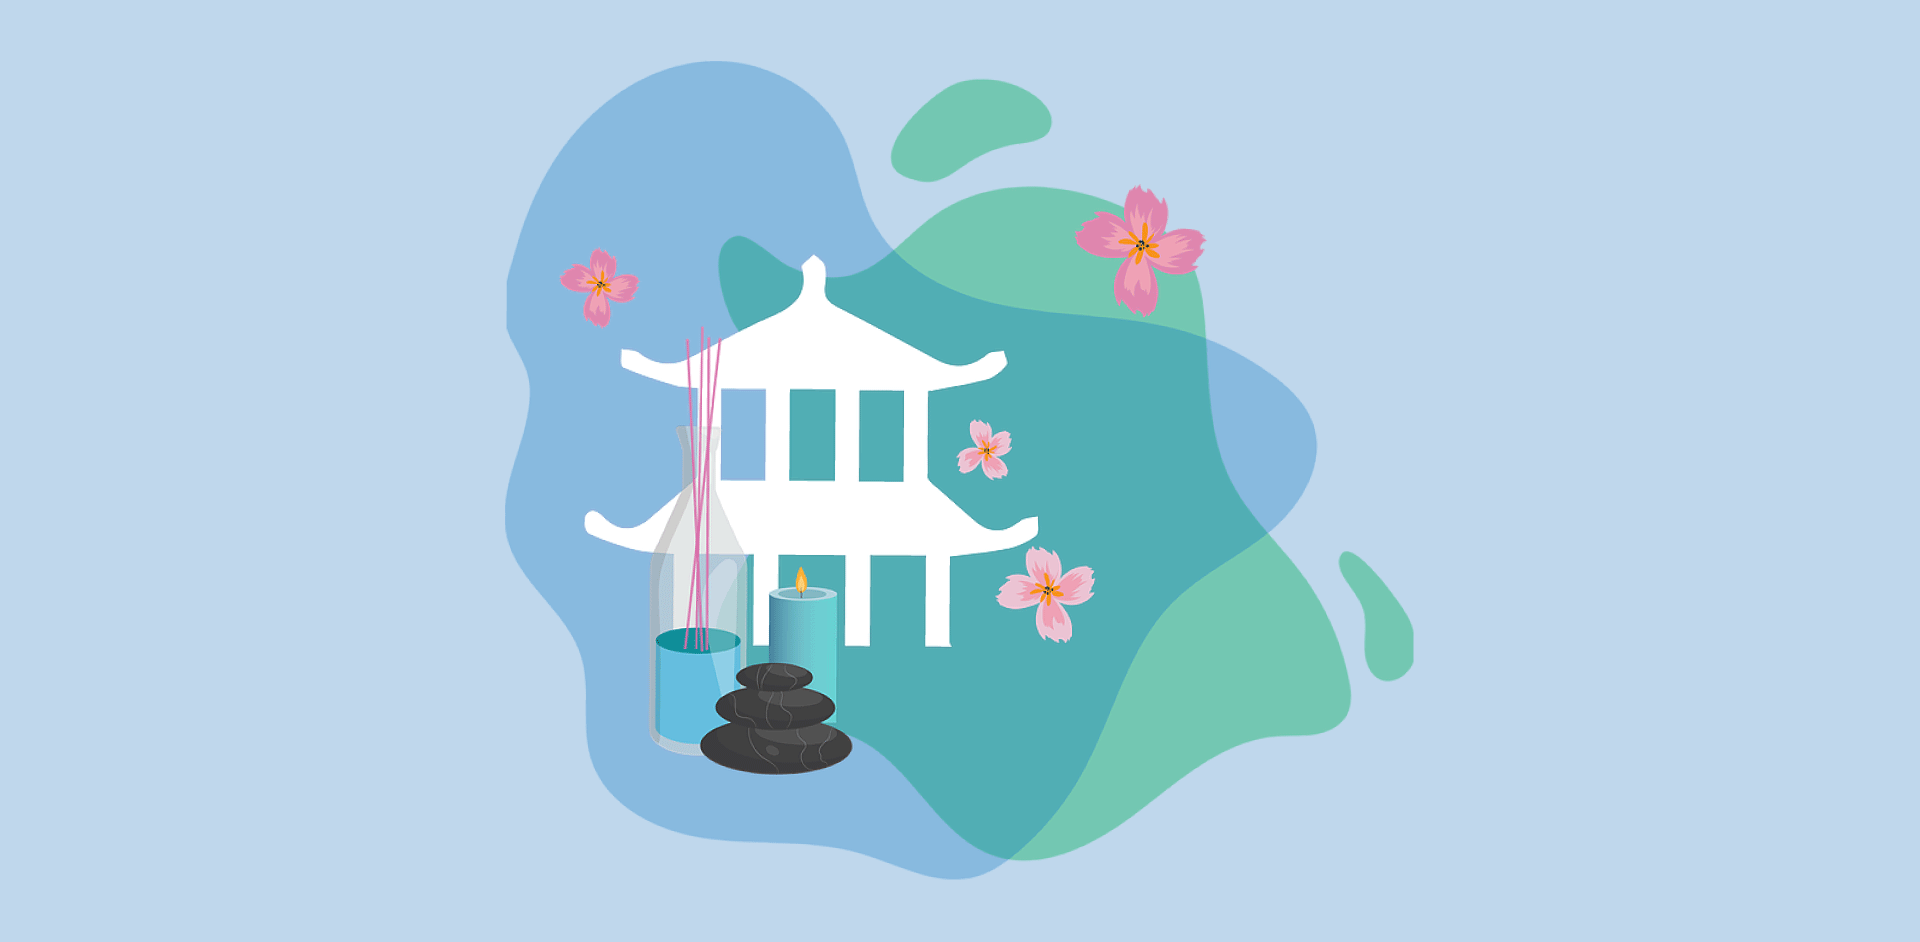 Vector illustration of a temple and wellness centre